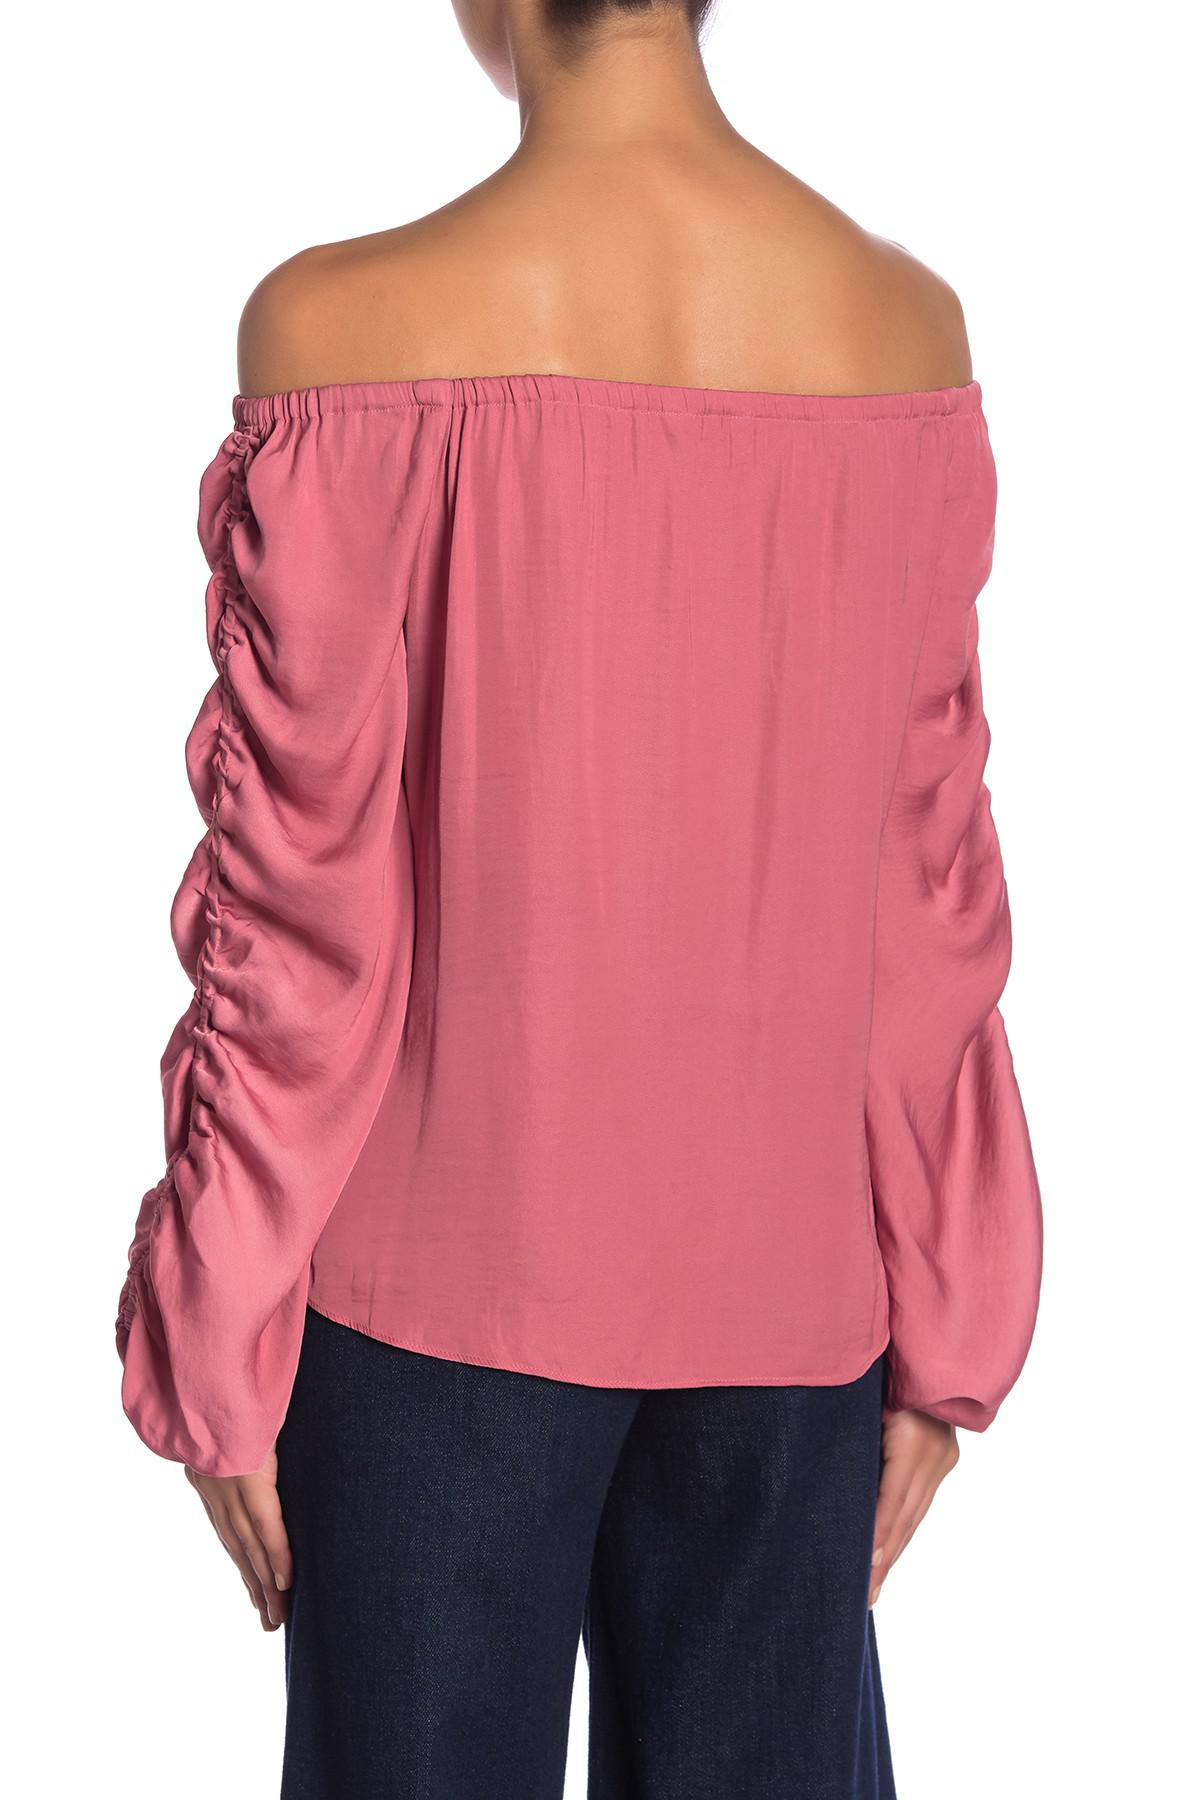 8f03281119ed7 Lyst - Naked Zebra Off-the-shoulder Gathered Sleeve Blouse in Pink